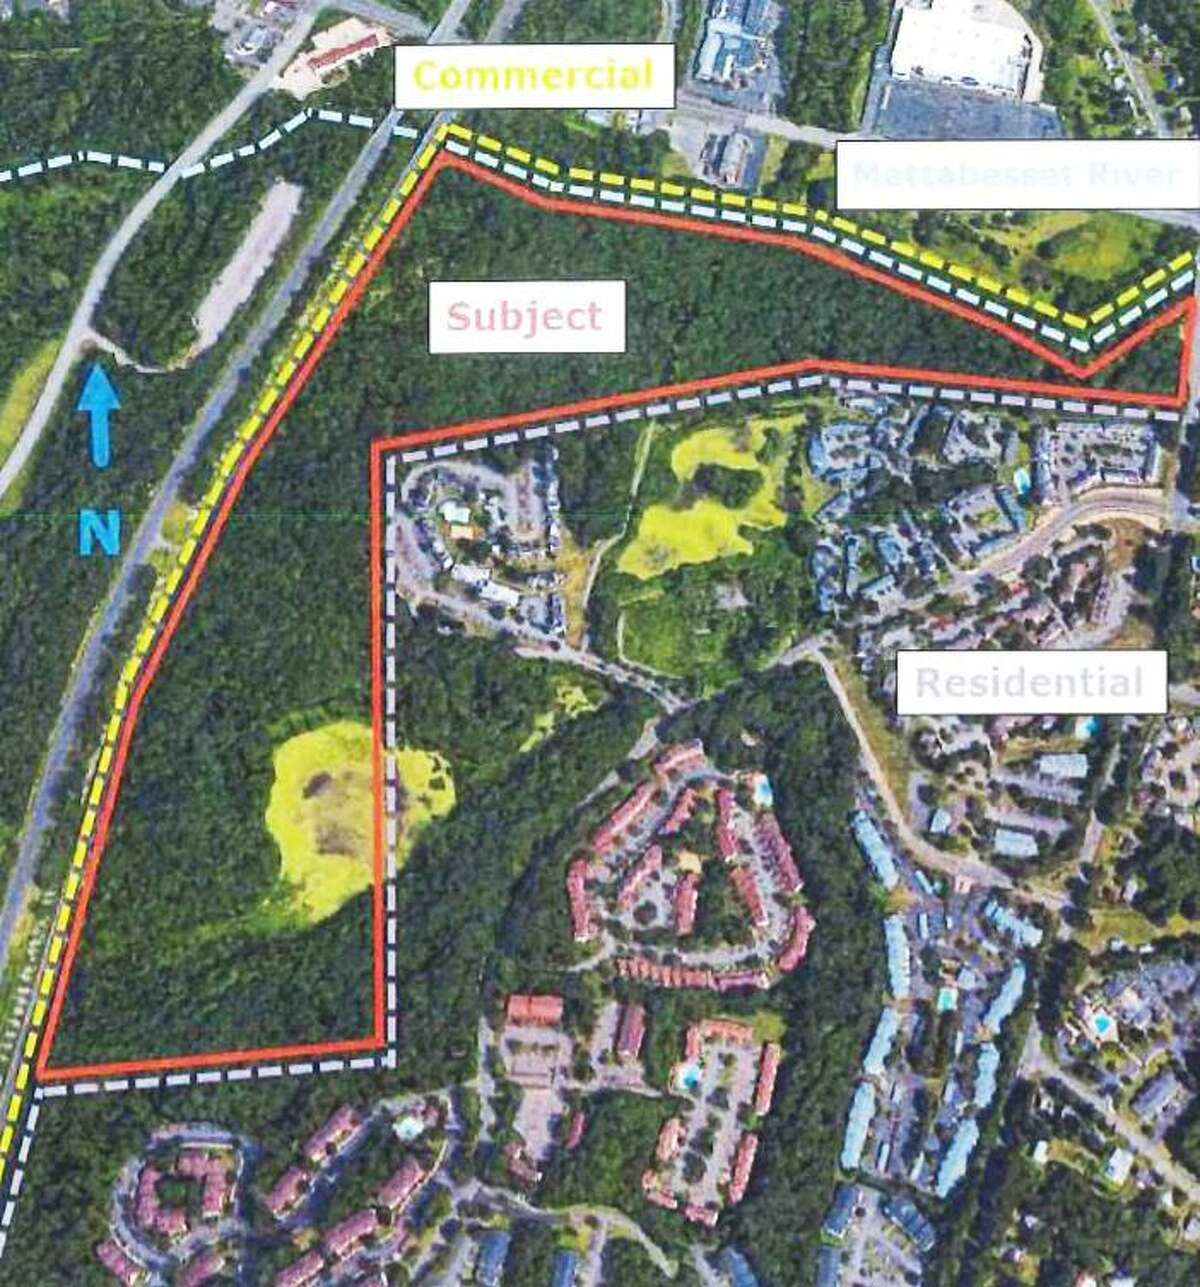 The city of Middletown will be purchasing 74.3 acres on Westlake Drive and East Street, near Interstate-91, for open space and passive recreation. Shown here are land use patterns.